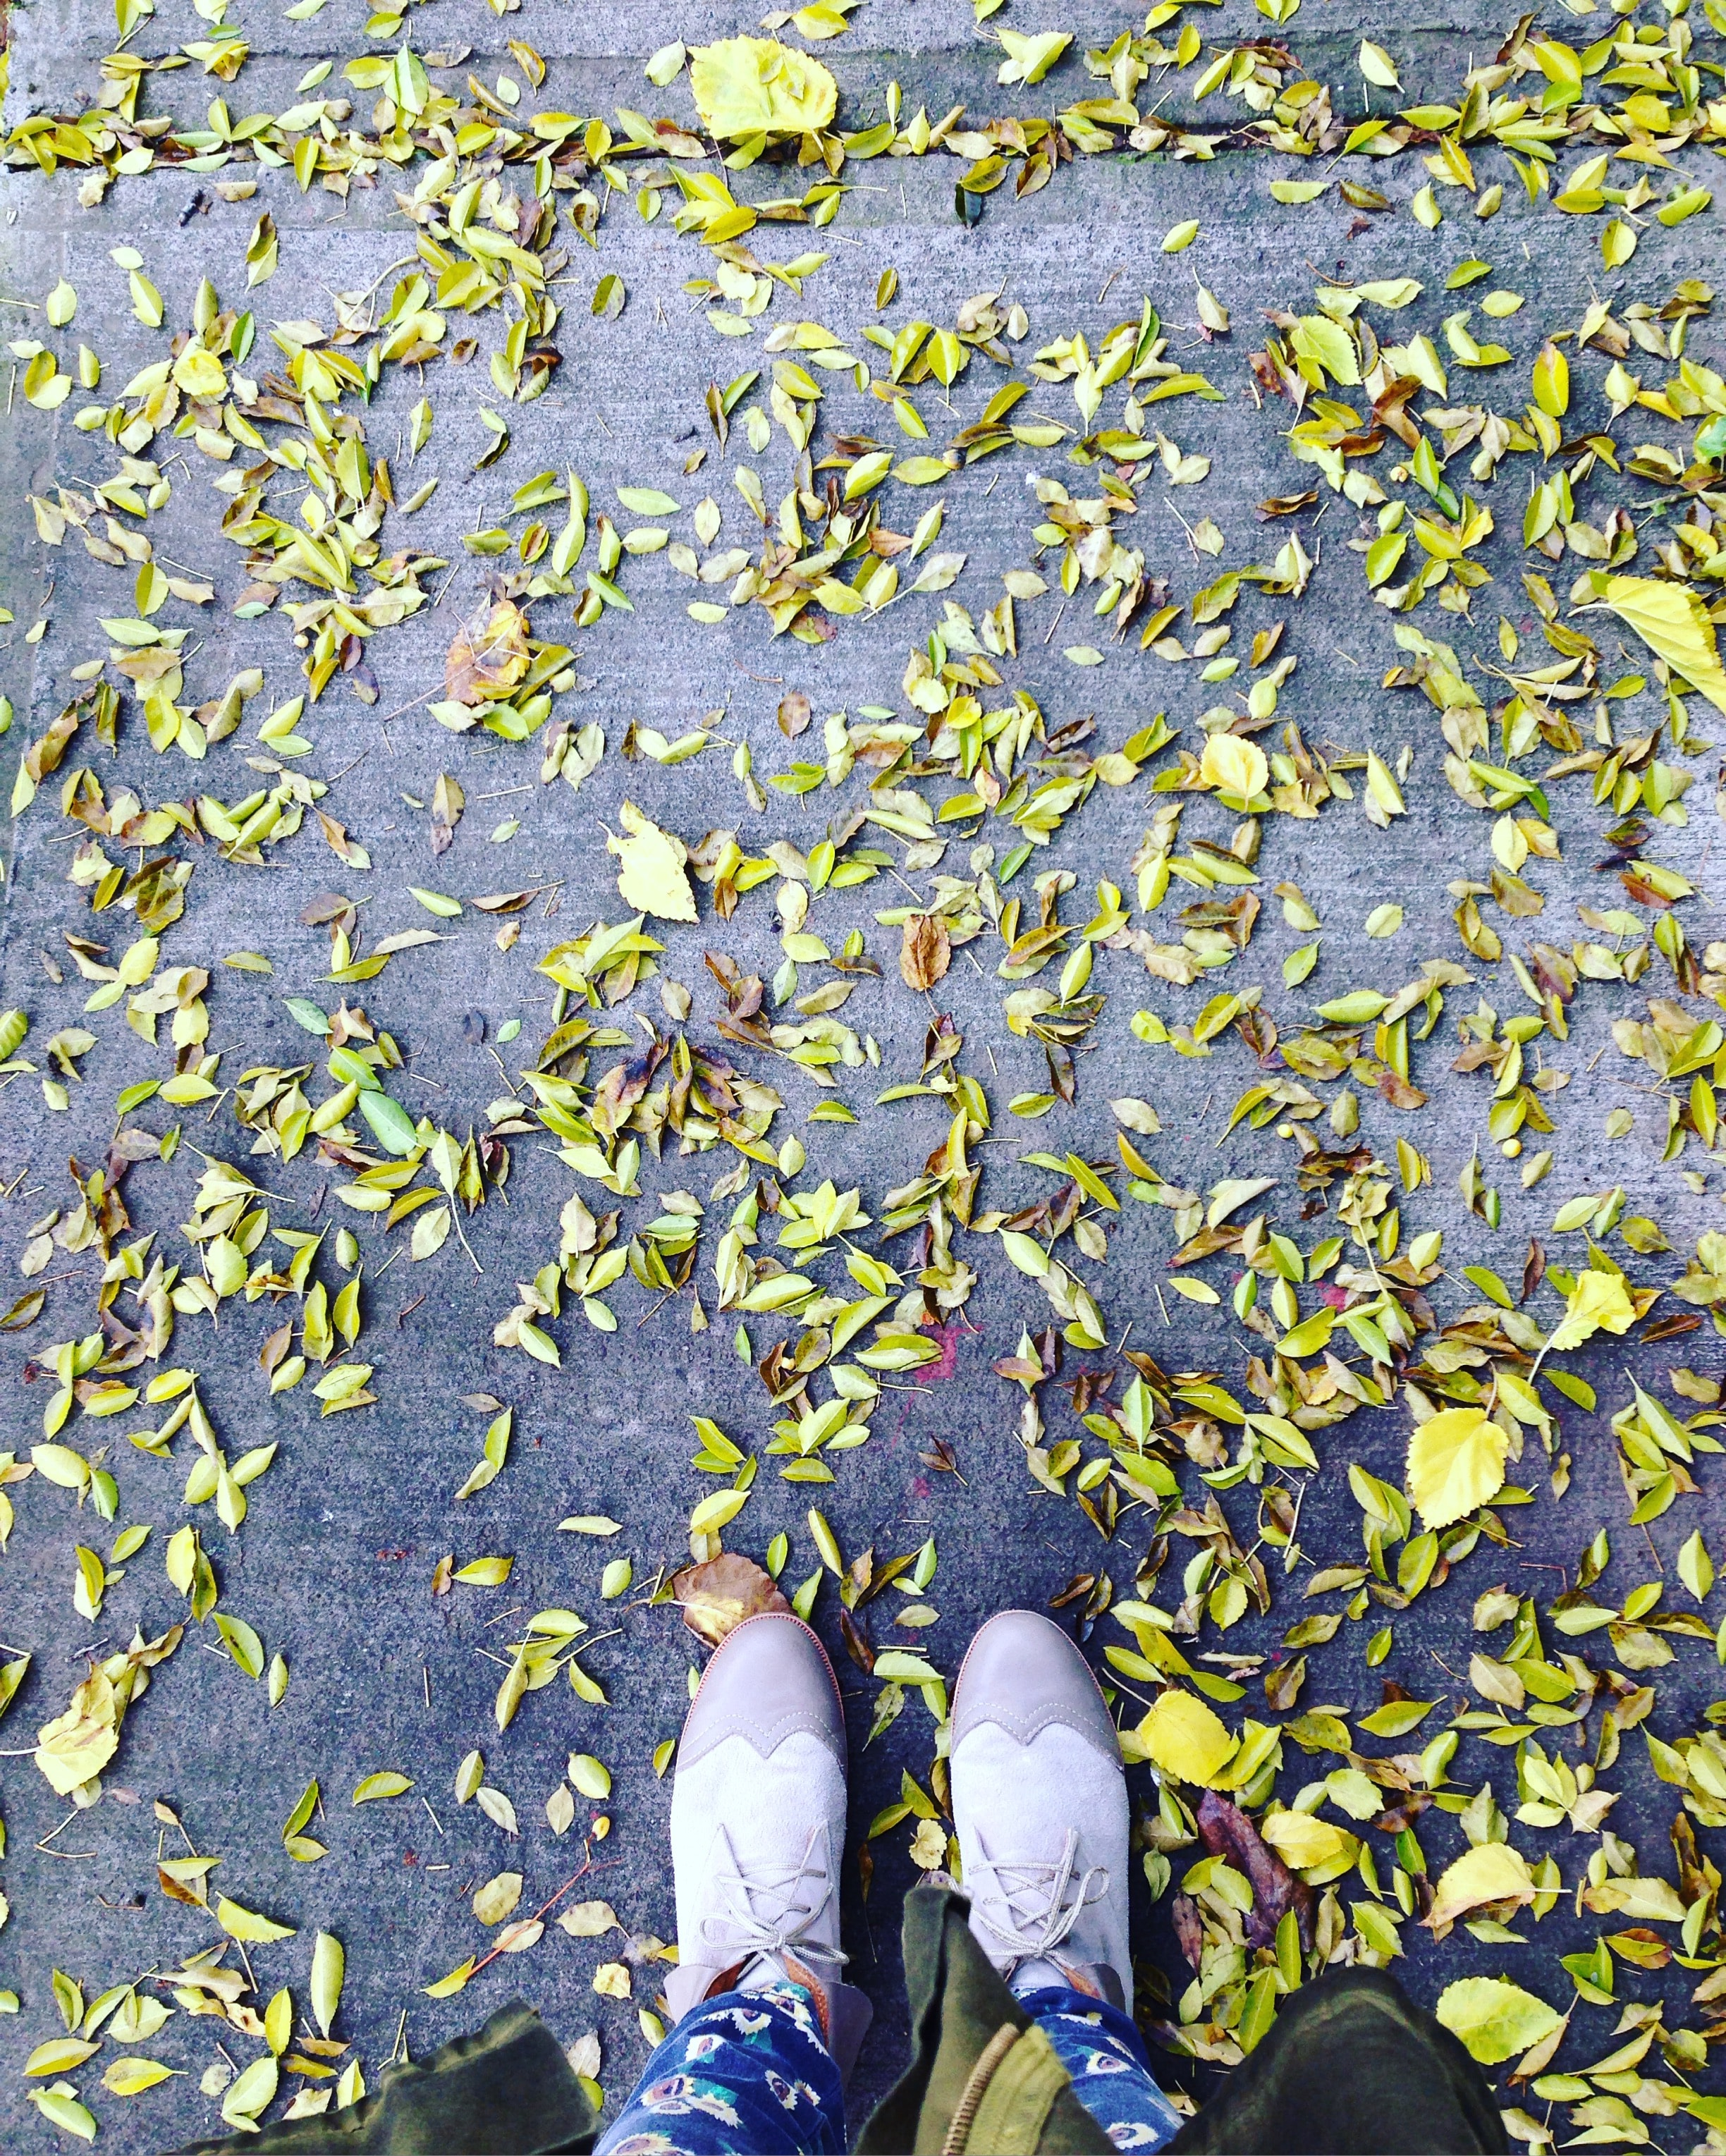 photo of person standing on pile of leaves